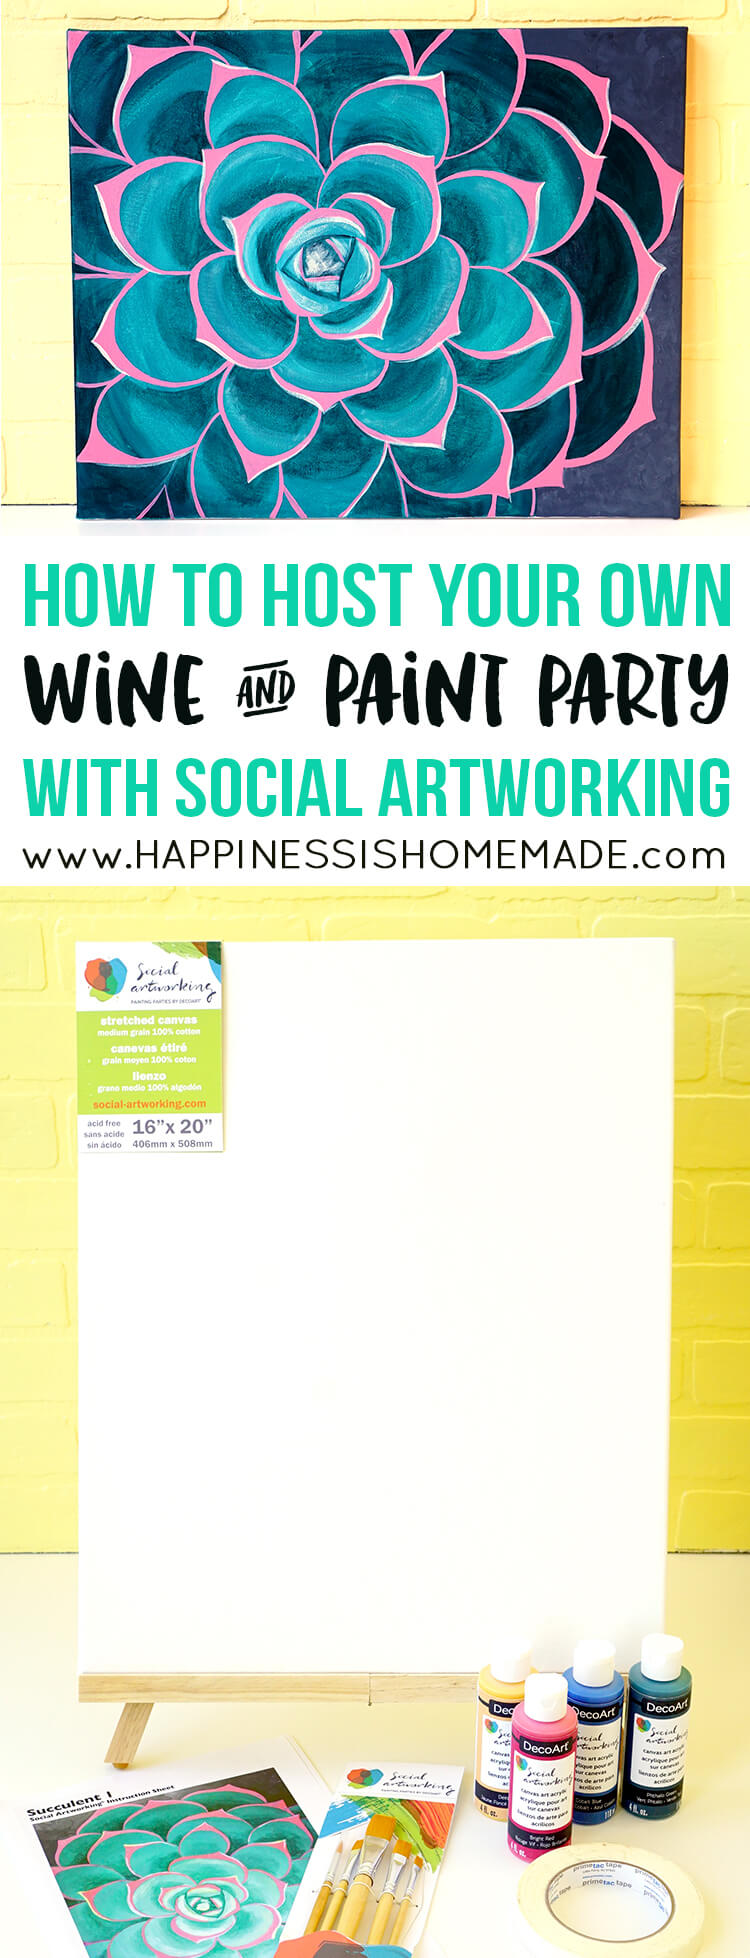 Host Your Own Wine & Paint Party  Happiness Is Homemade. What Is Neurotic Depression Urgent Med Davie. Protect America Alarm Systems. Tax Attorney Sacramento Exchange Email Access. Virtual Office In Atlanta Best Rate Plumbing. Country Kitchen Remodel Google Online Banking. Photography Schools In New England. New Seasons Assisted Living Home Loans Easy. Dreamweaver Html Email Templates